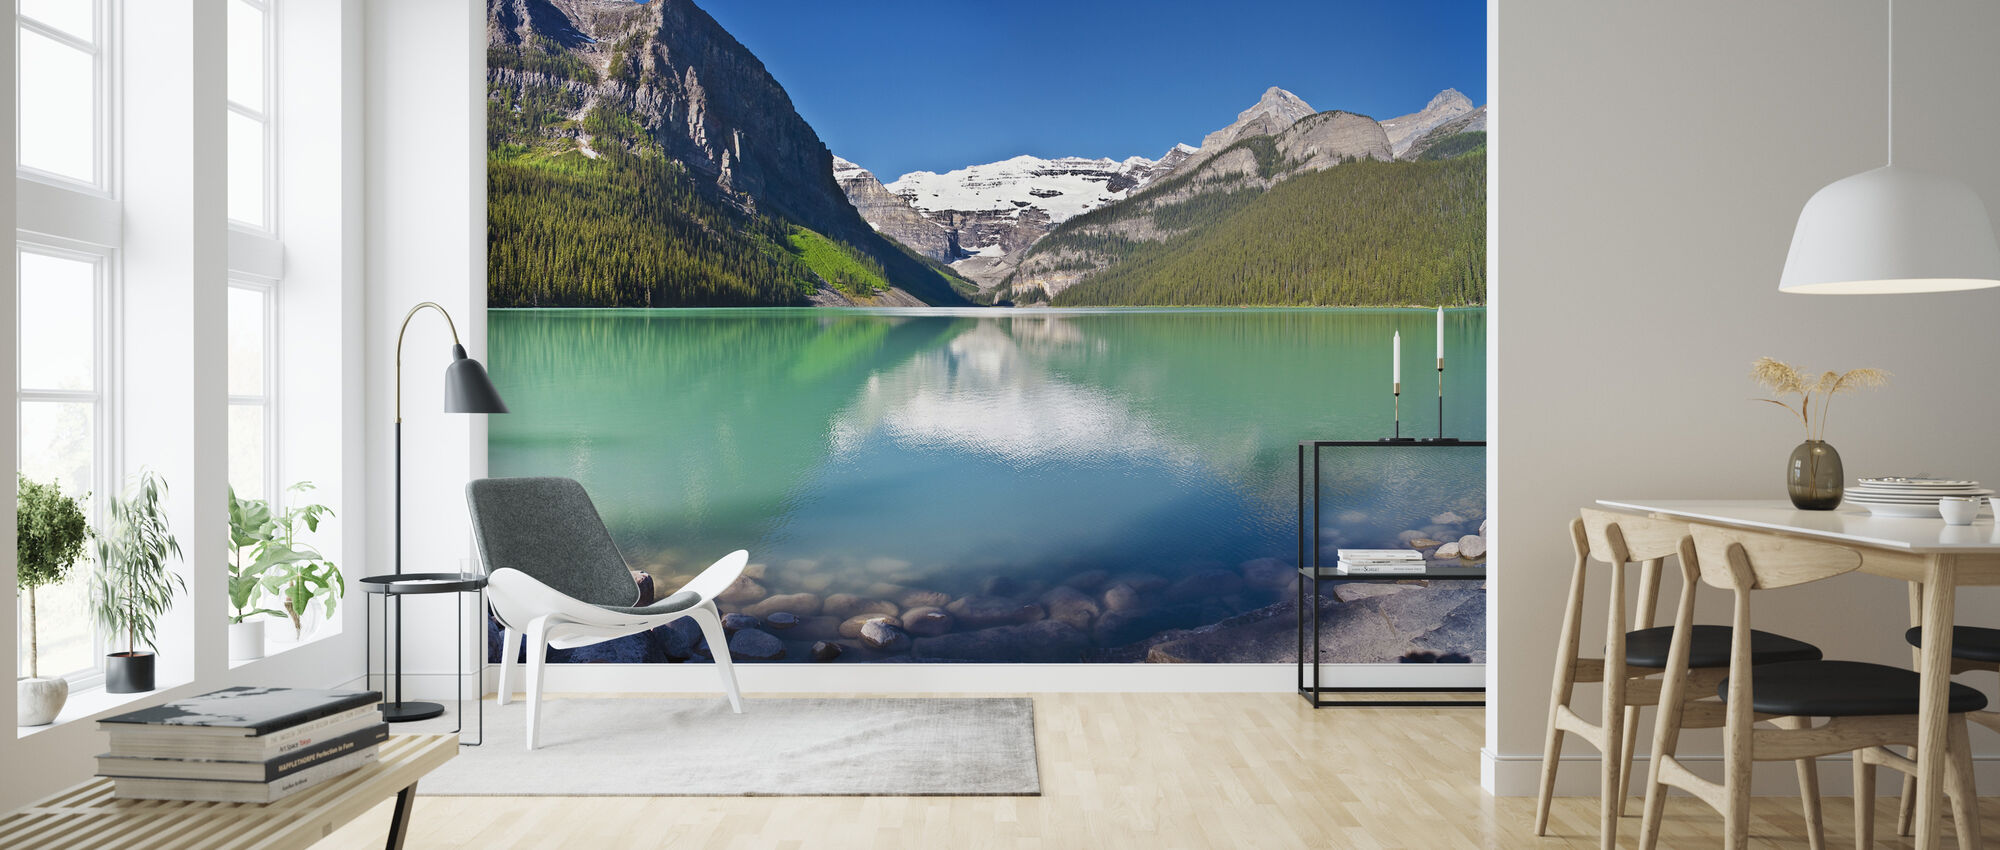 Lake Louise, Alberta, Canada, North America, Panorama - Wallpaper - Living Room